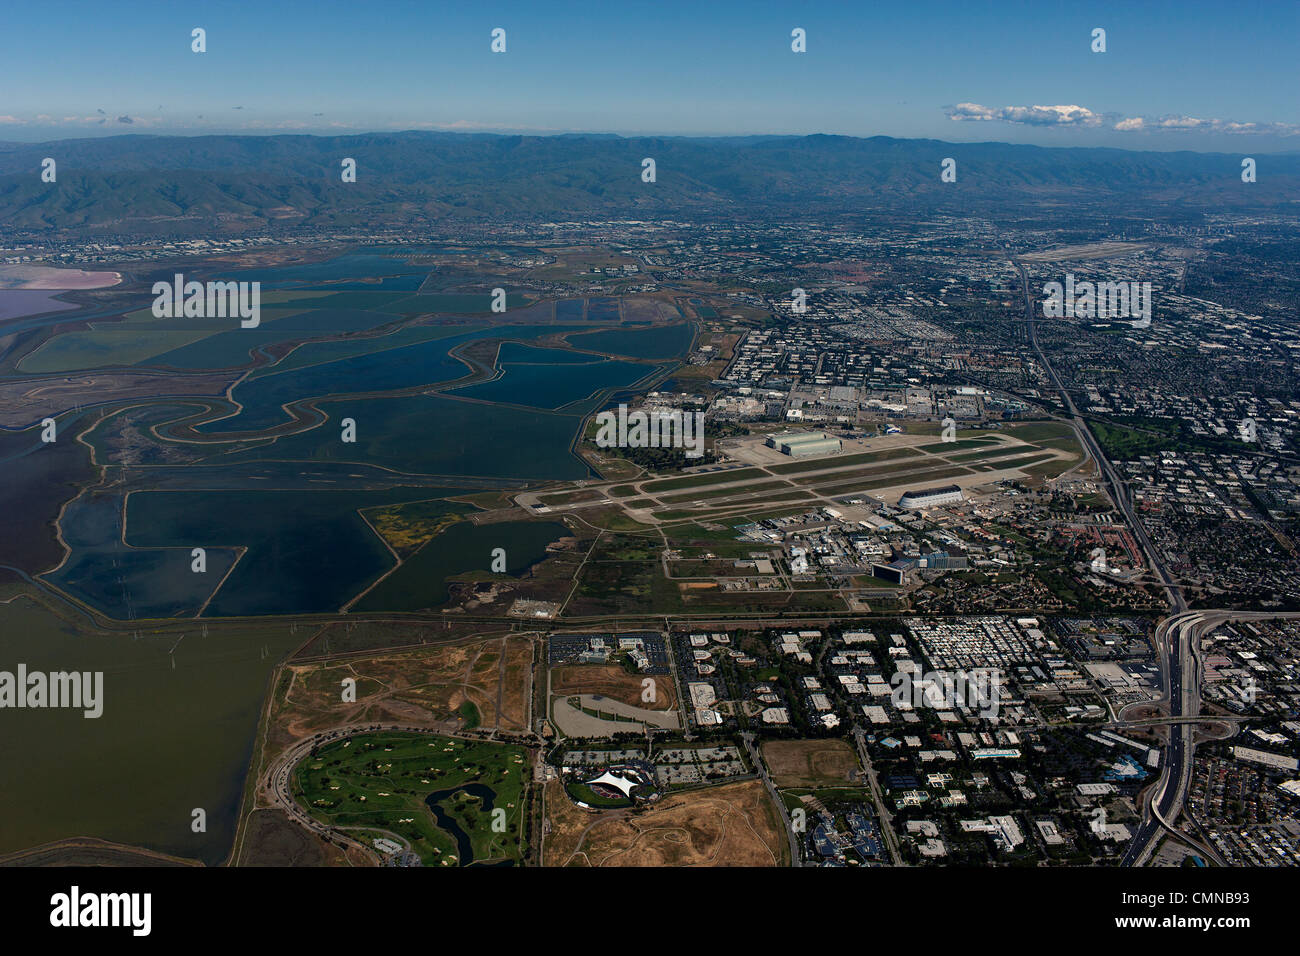 aerial photograph Mountain View, Silicon Valley, California - Stock Image